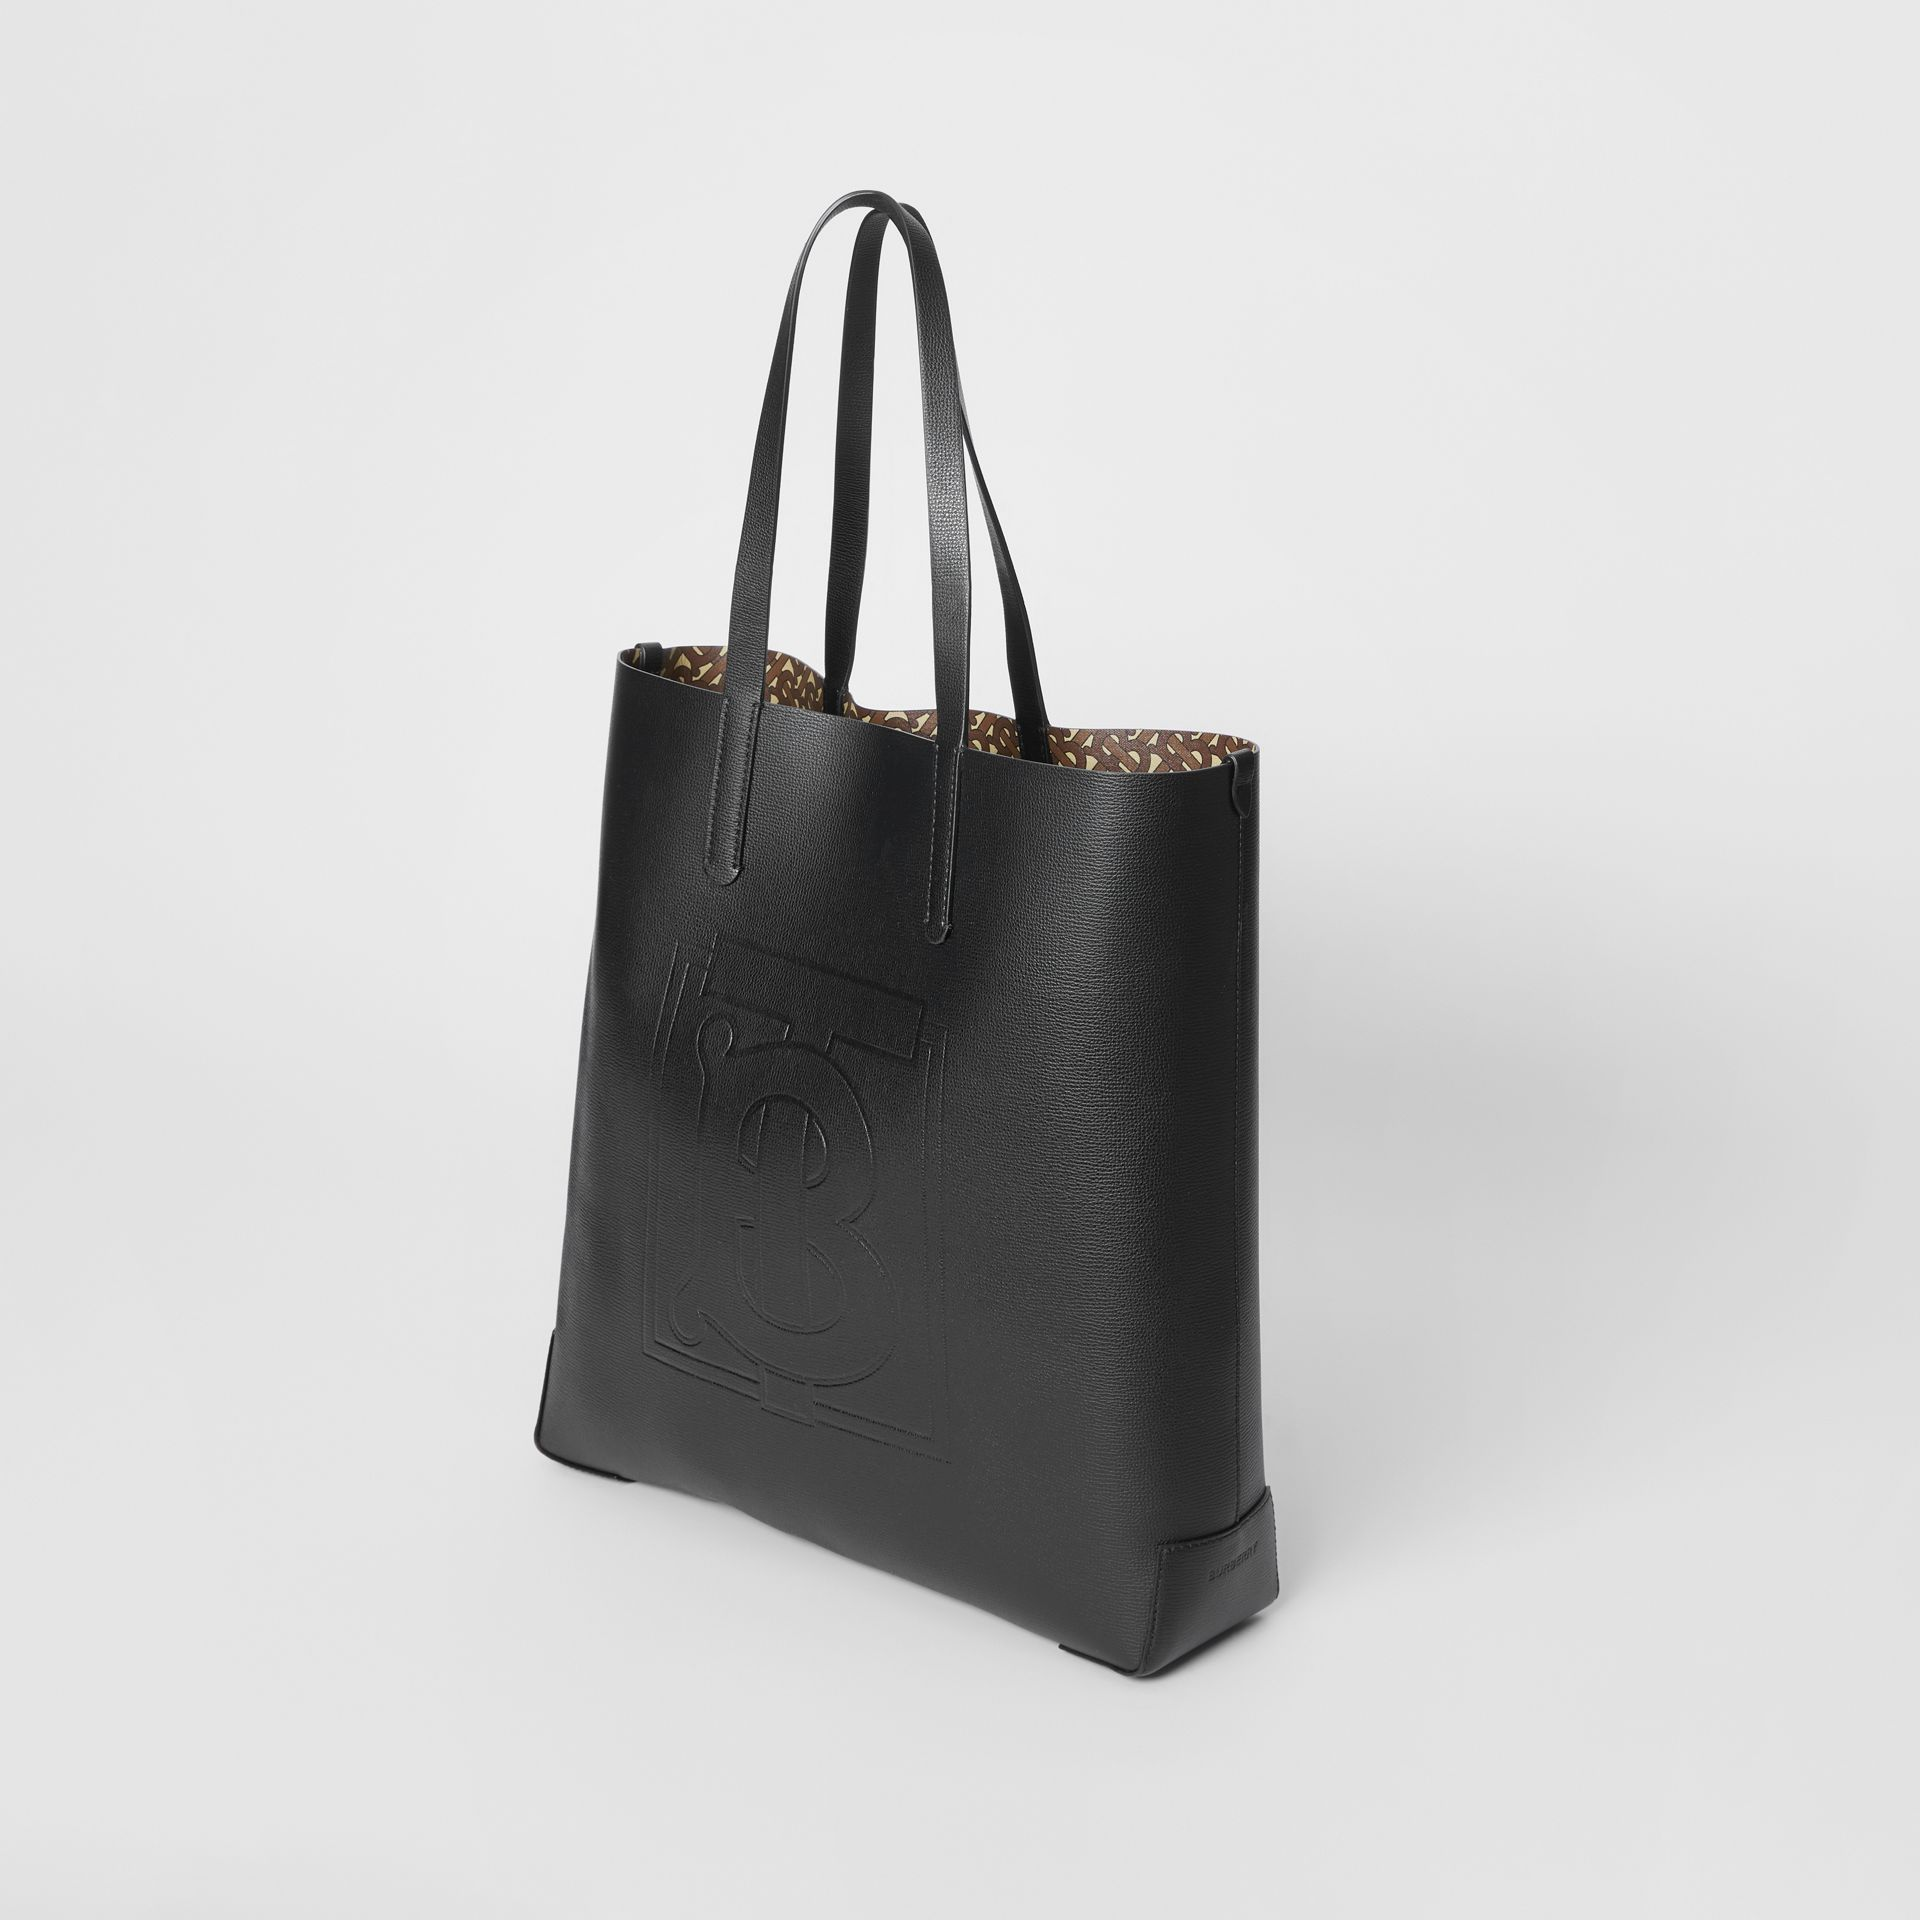 Grand sac tote en cuir embossé Monogram (Noir) | Burberry Canada - photo de la galerie 2